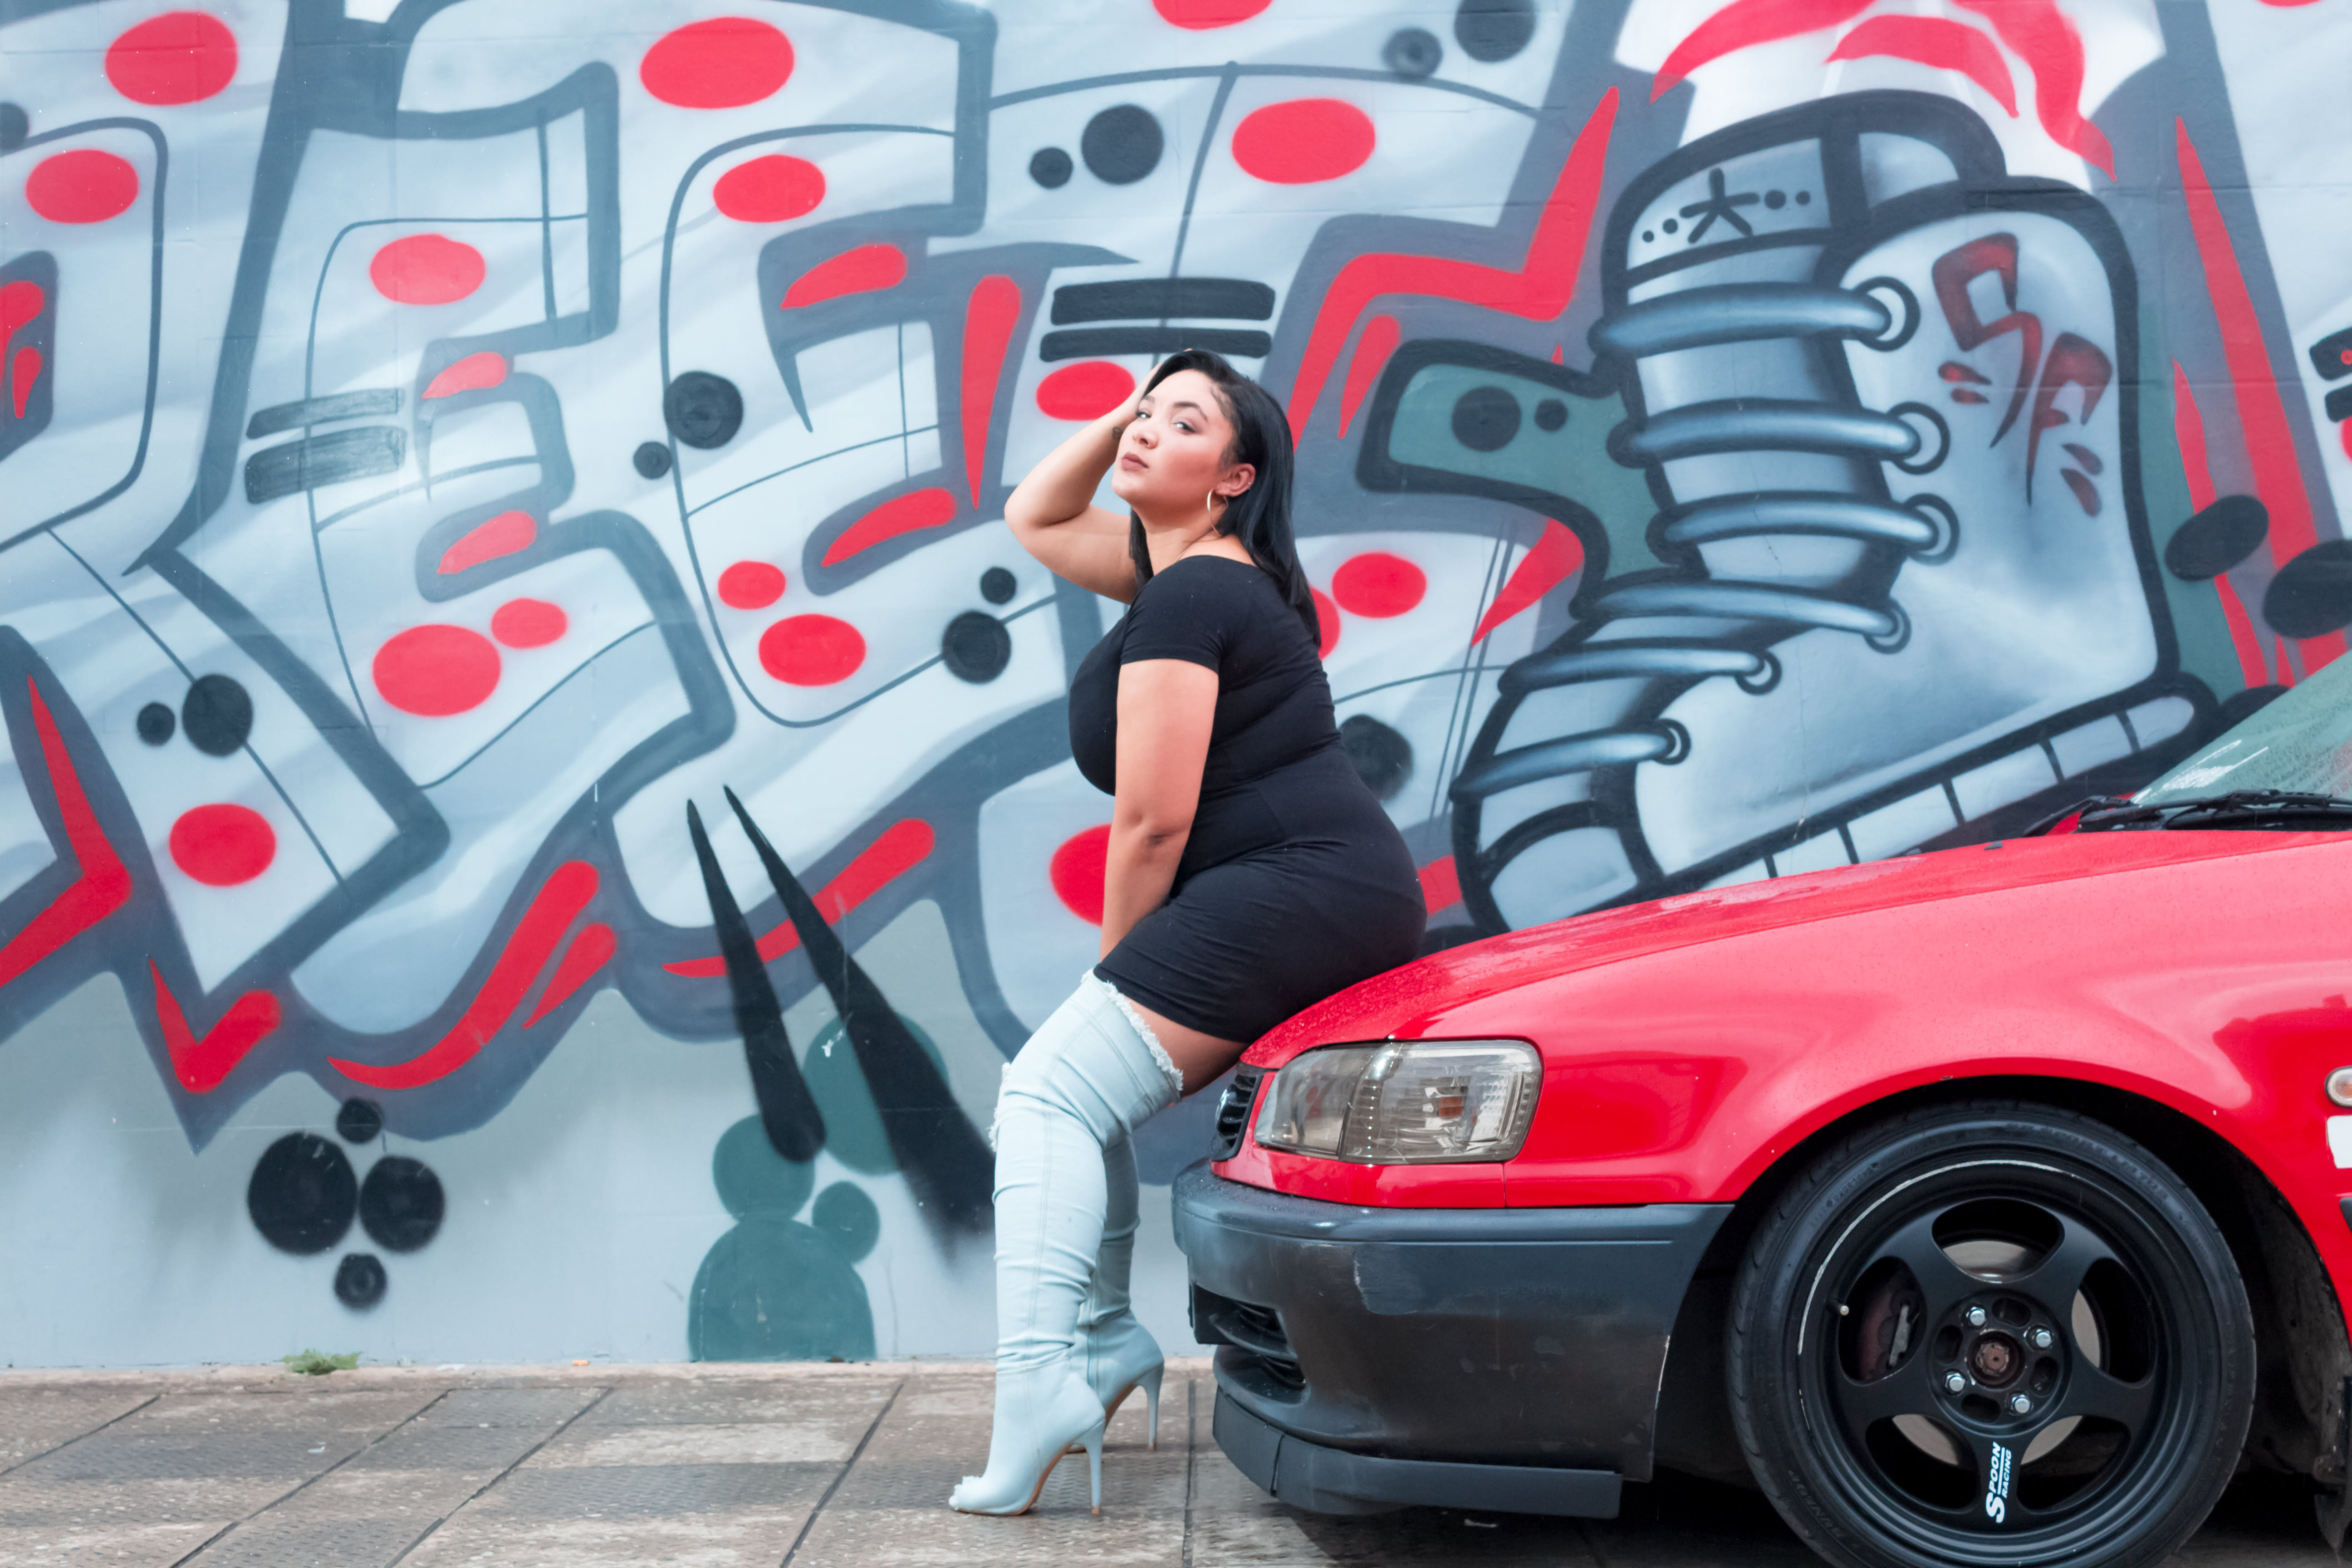 Woman Sitting On Red Vehicle